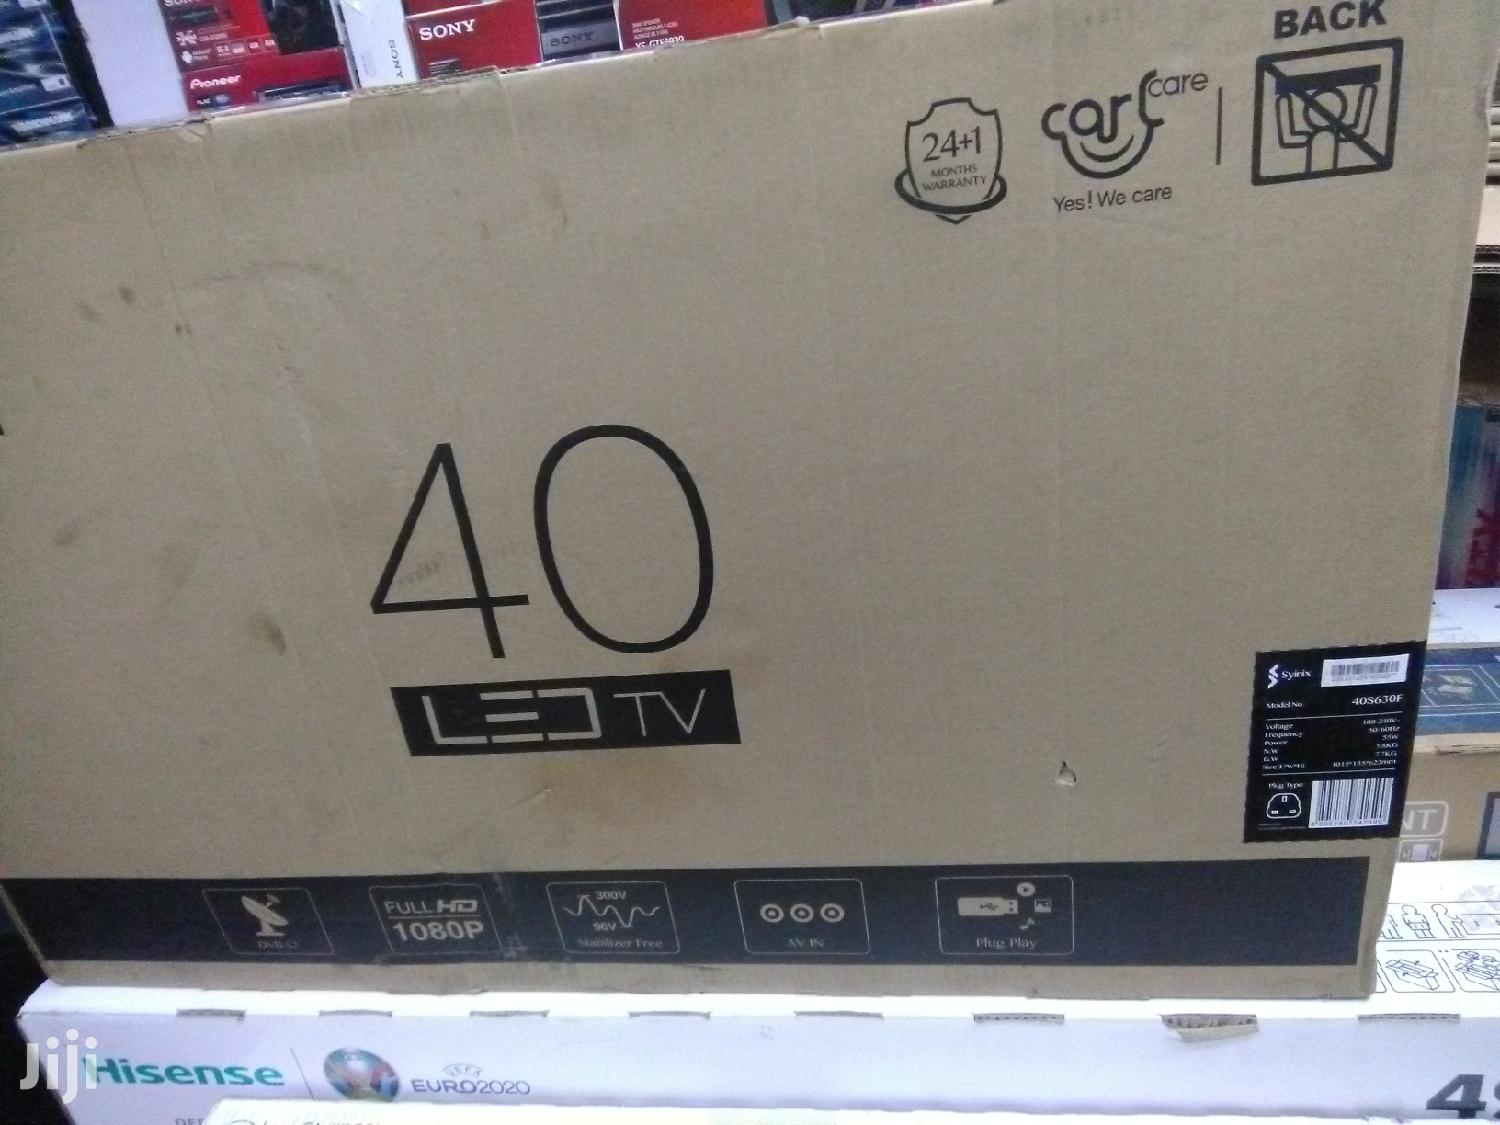 Syinix Tv 40inch Digital Tv | TV & DVD Equipment for sale in Nairobi Central, Nairobi, Kenya